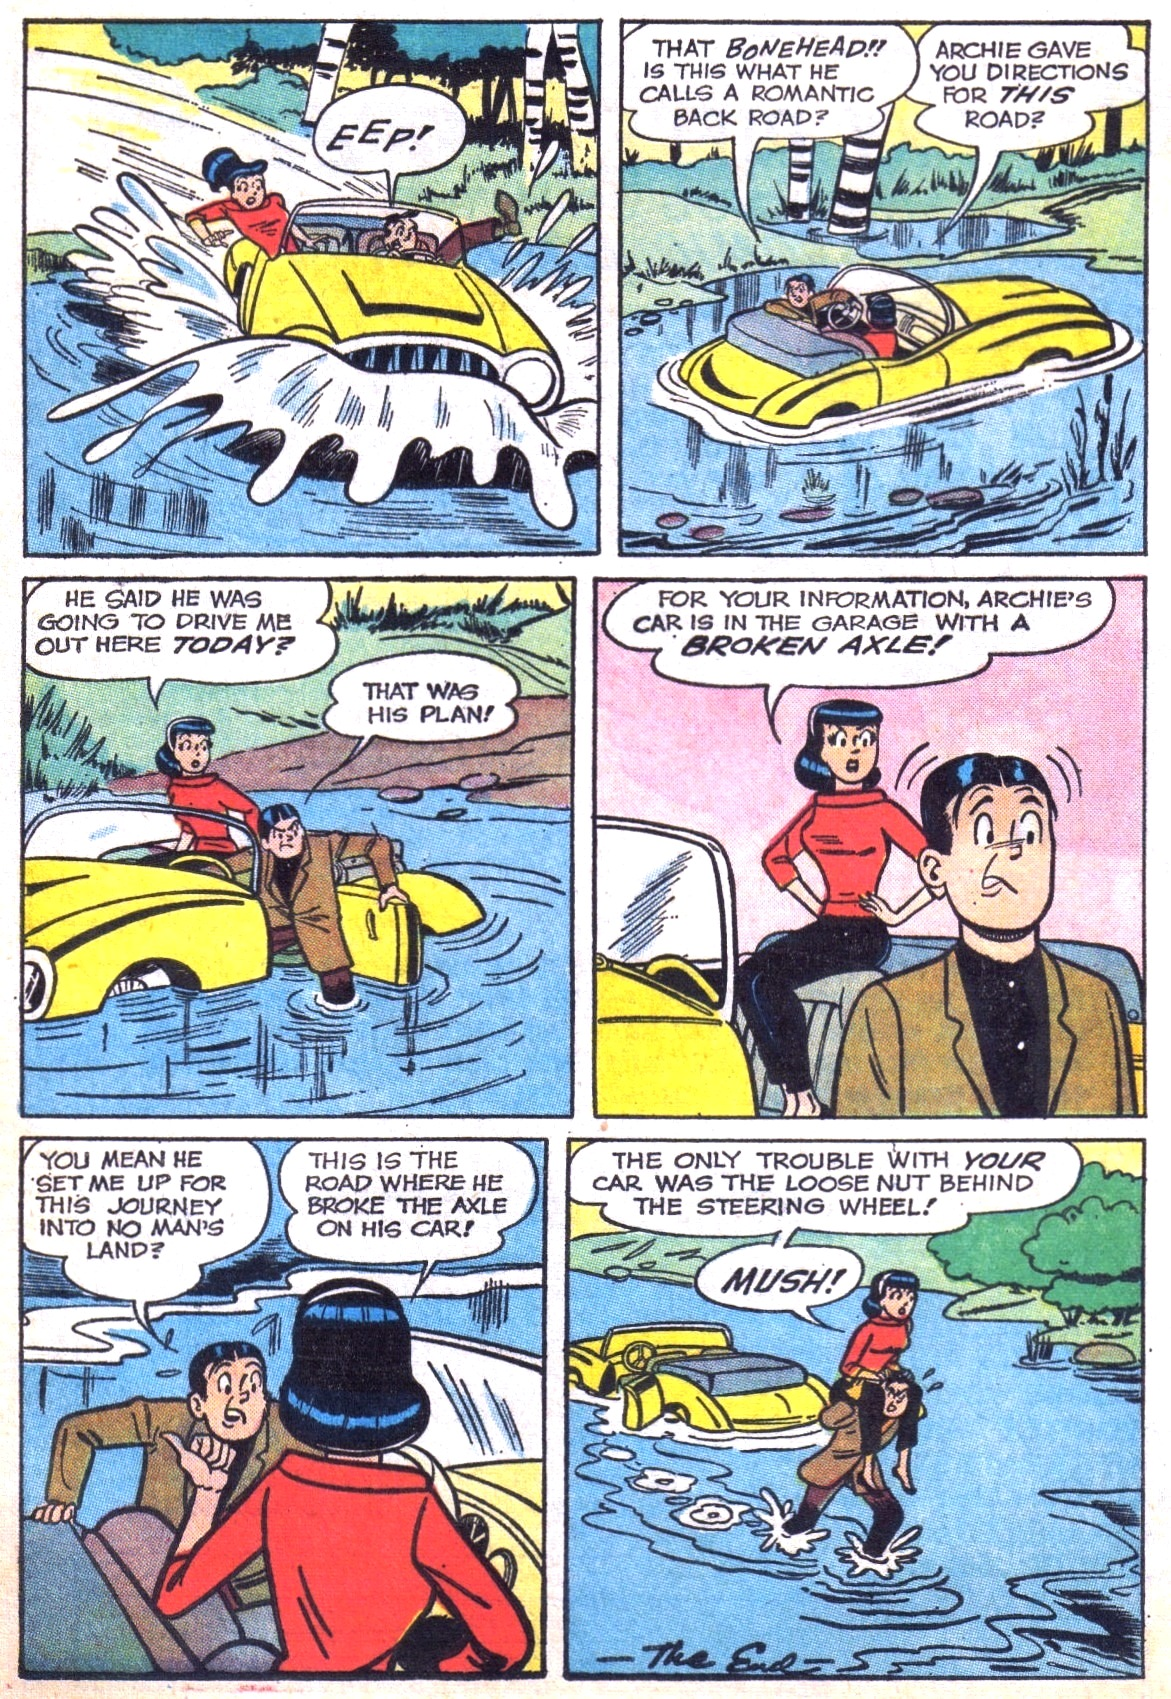 Read online Archie (1960) comic -  Issue #142 - 33